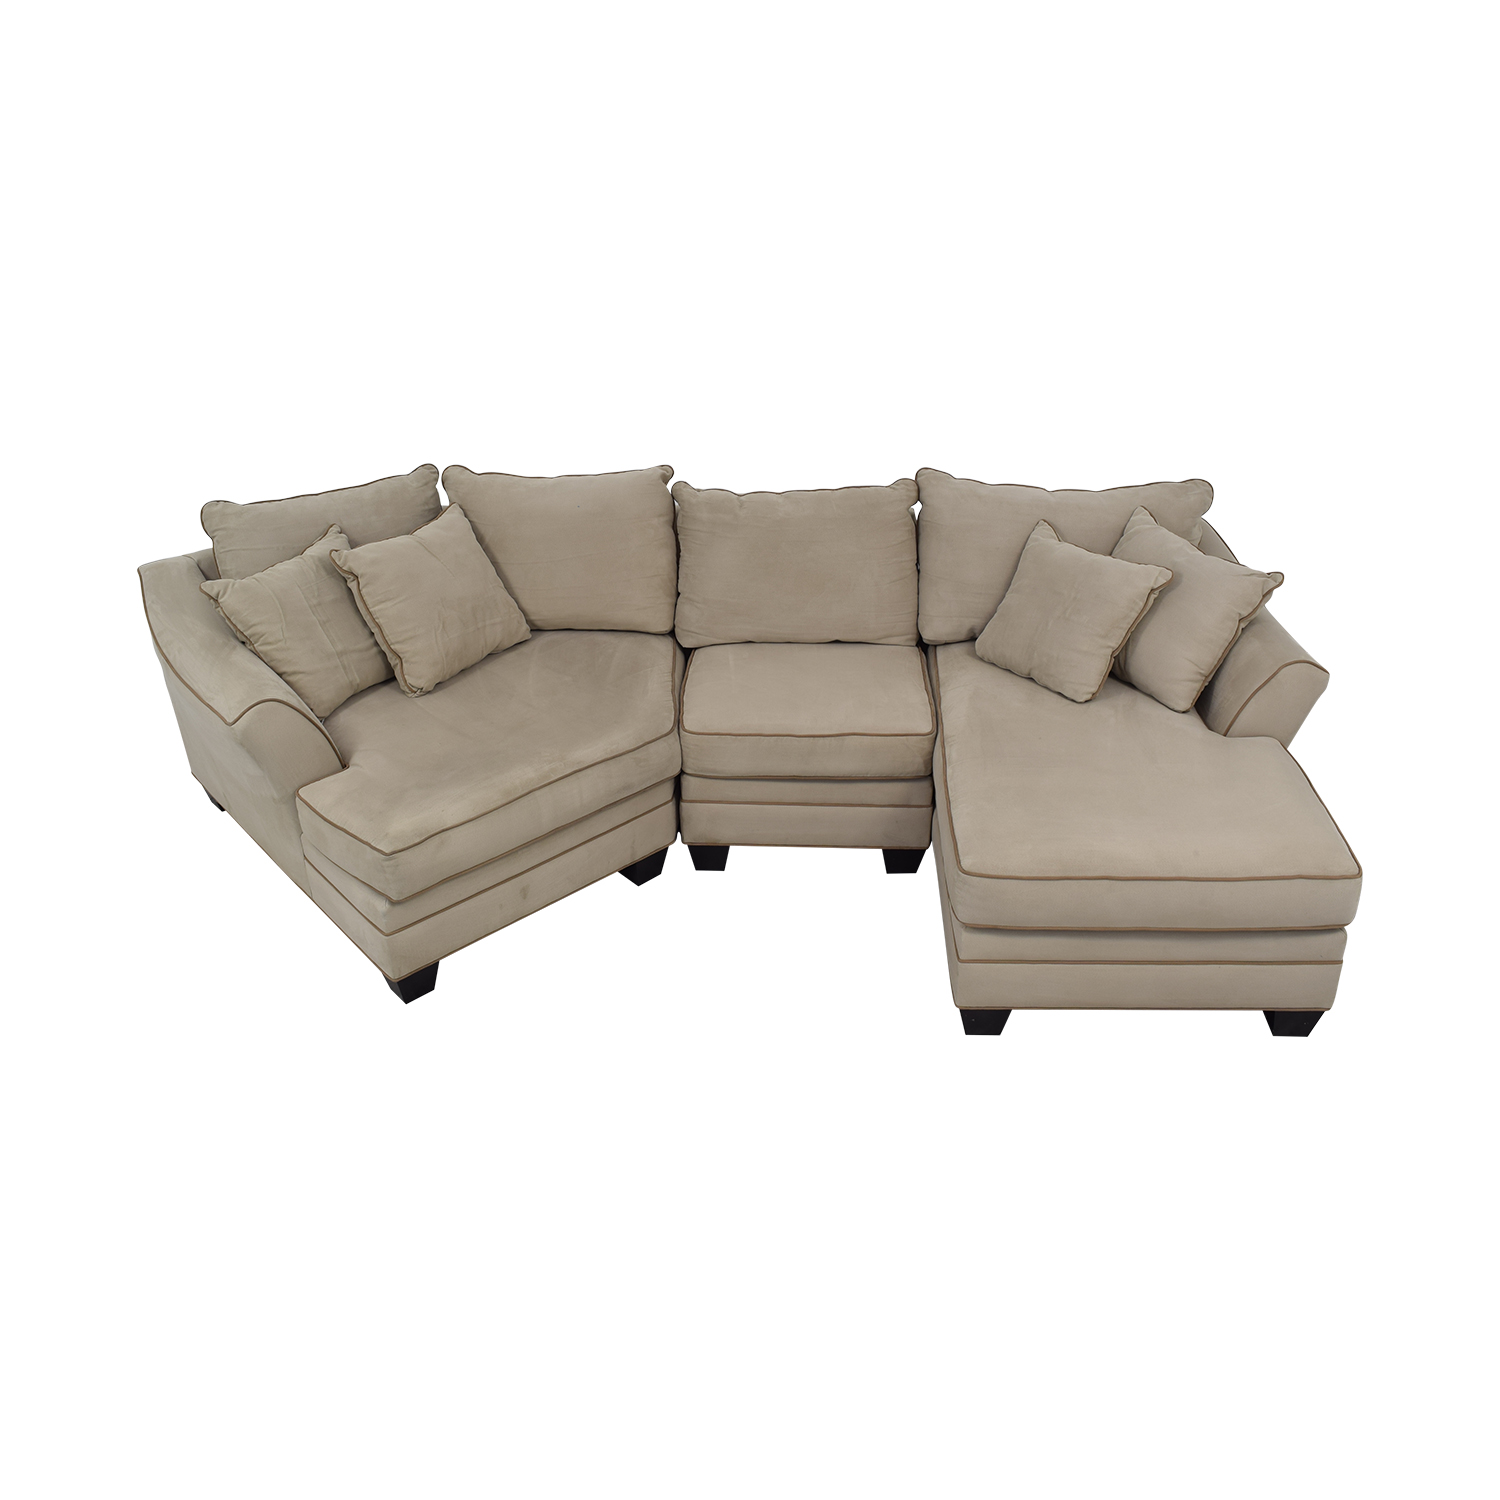 82% OFF - Raymour & Flanigan Raymour & Flanigan Foresthill Two-Piece  Sectional Sofa / Sofas